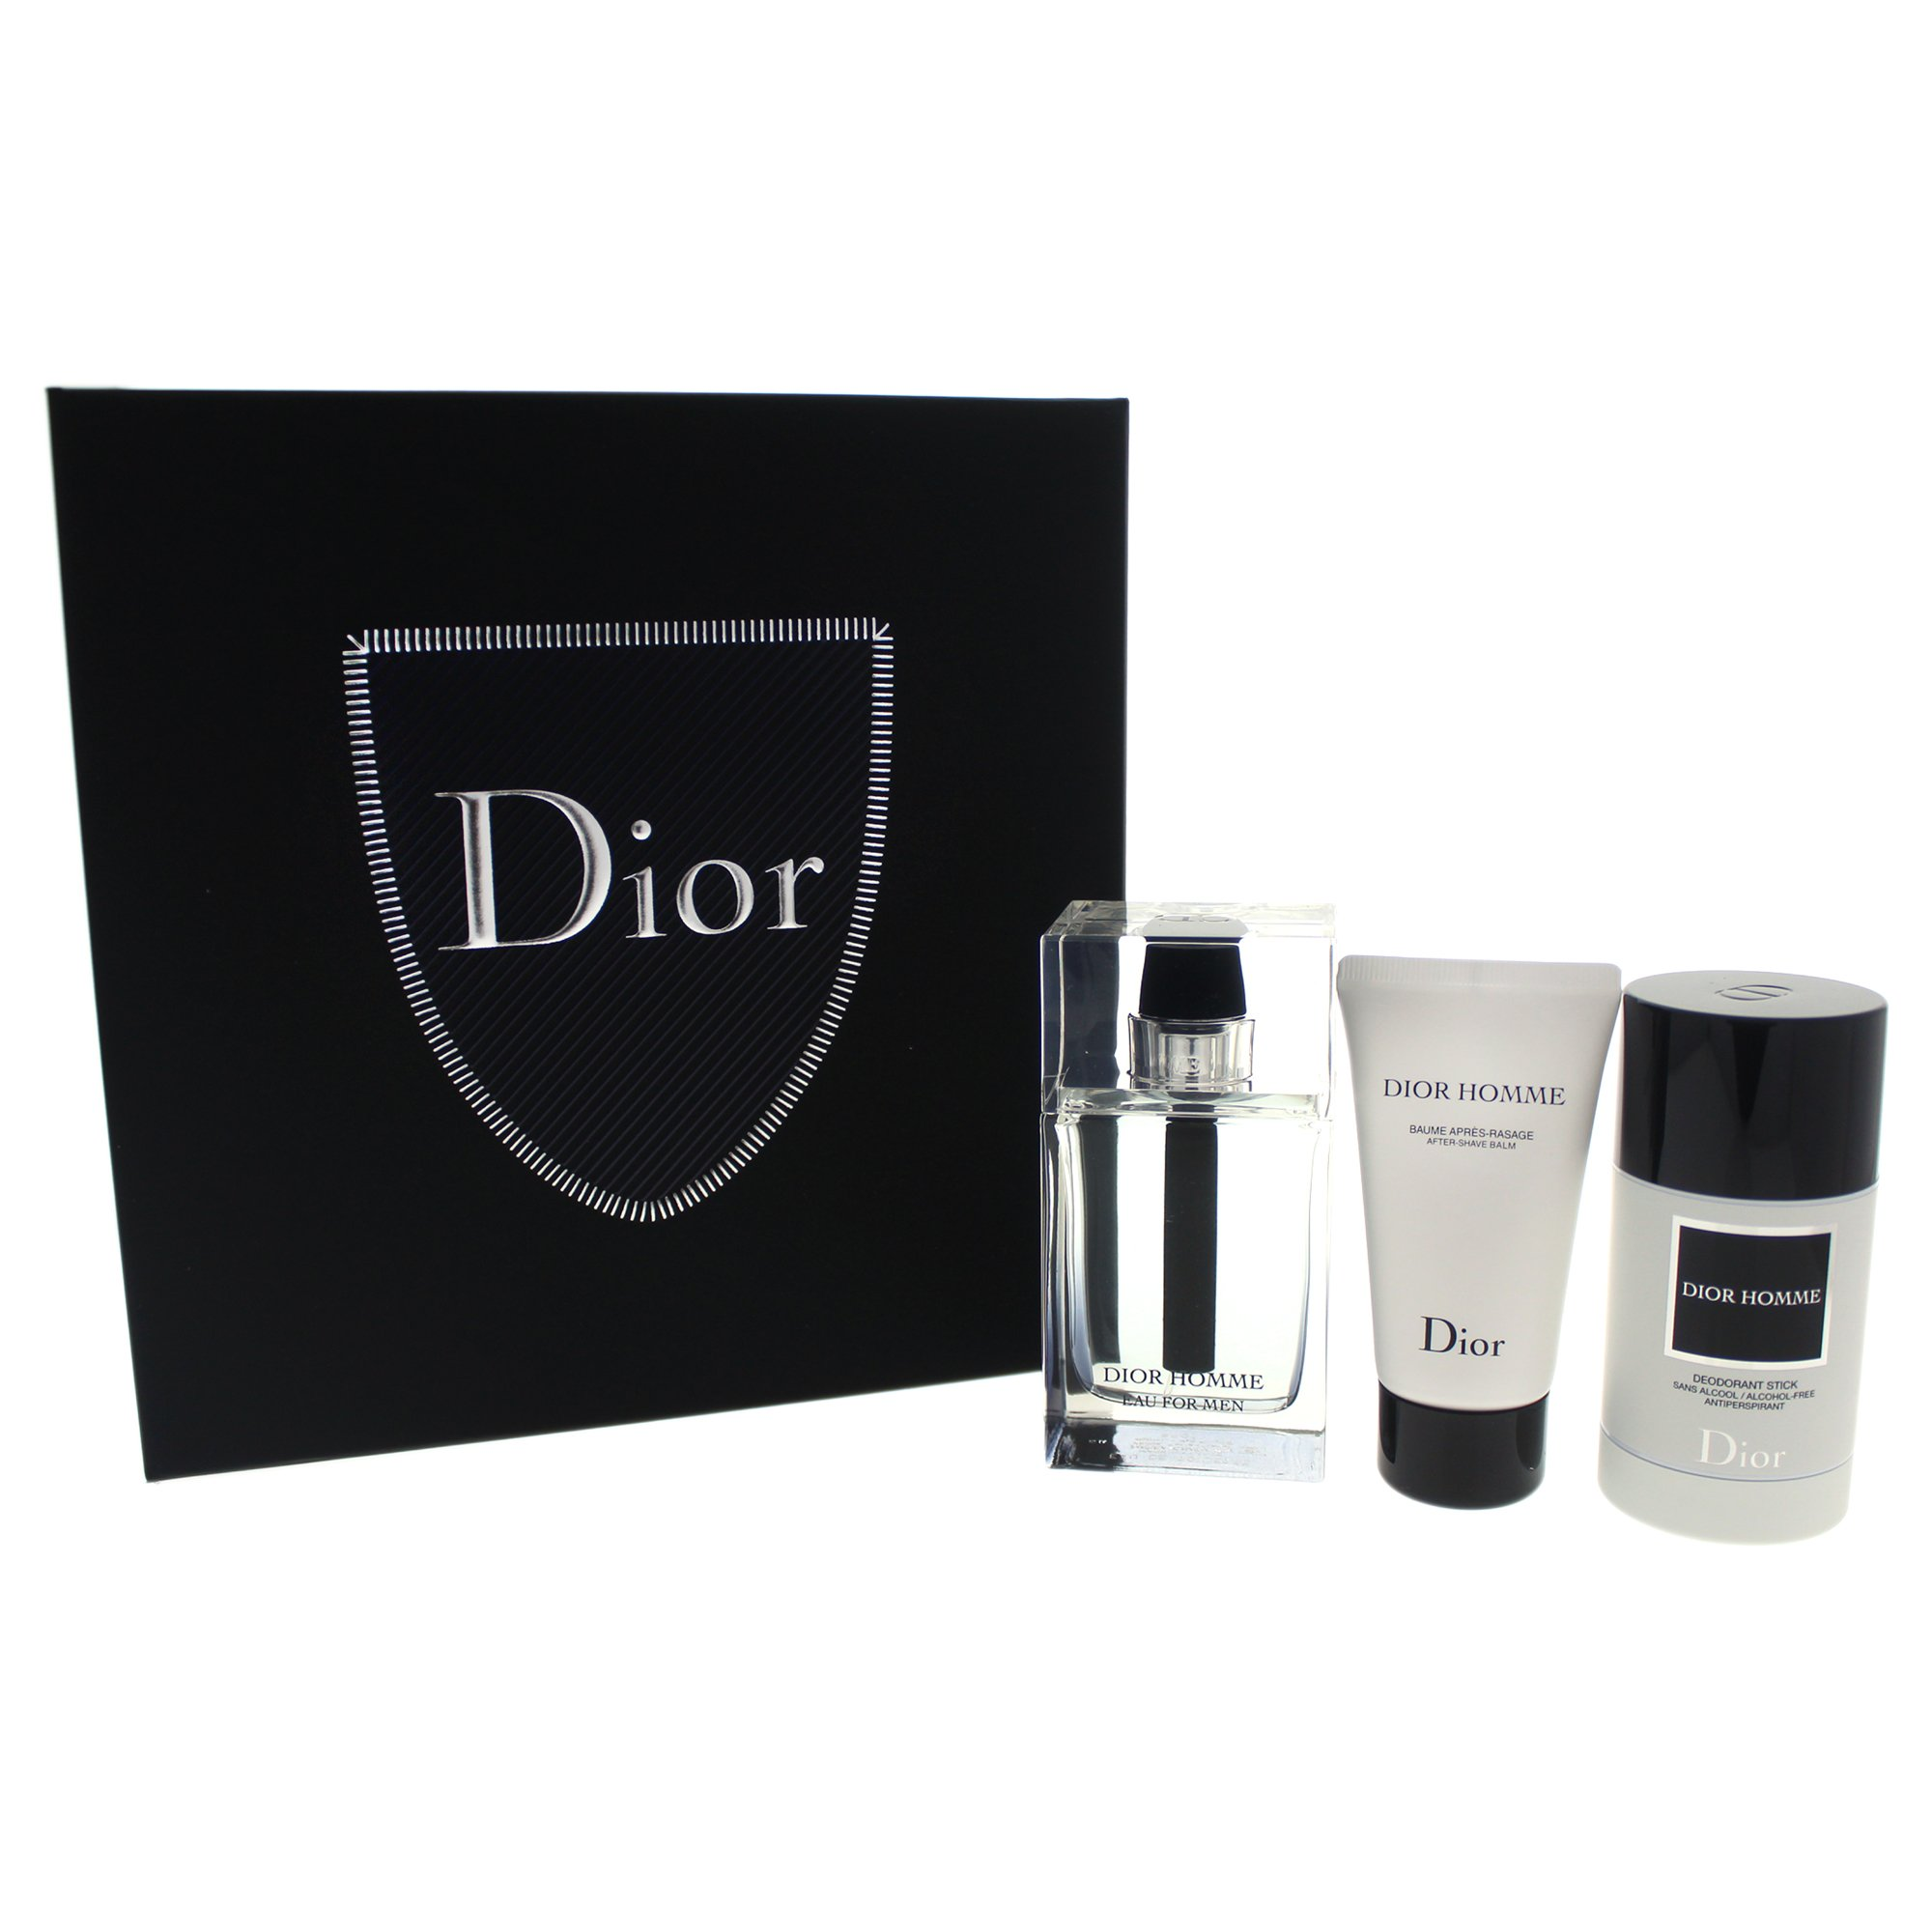 Christian Dior Homme Eau for Men 3 Piece Gift Set